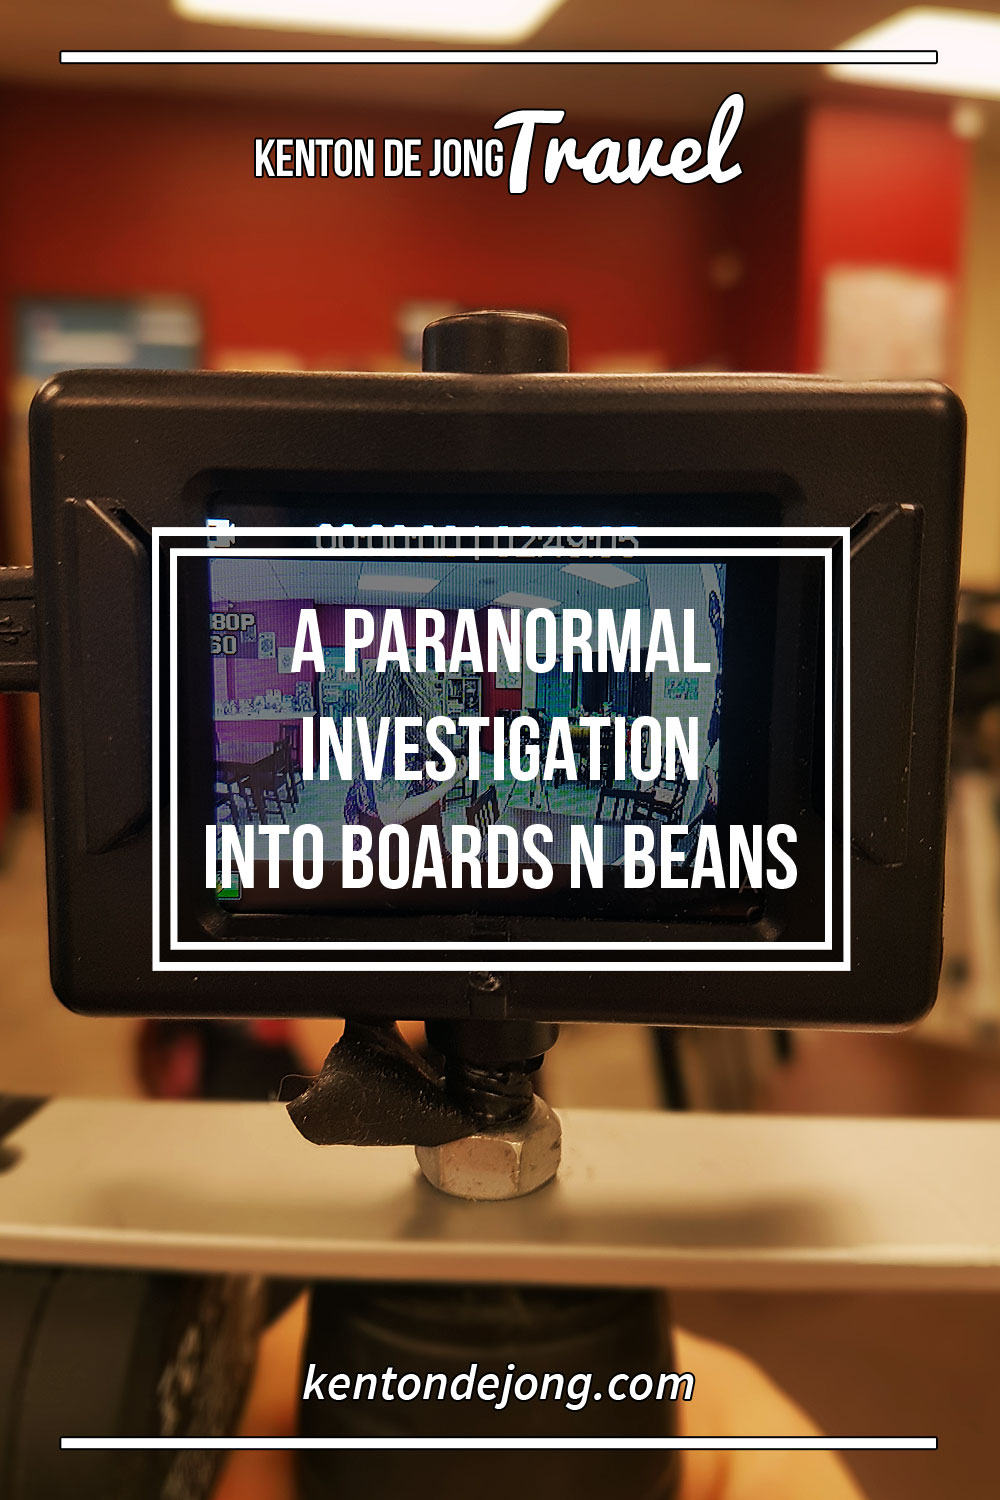 A Paranormal Investigation into Boards n Beans